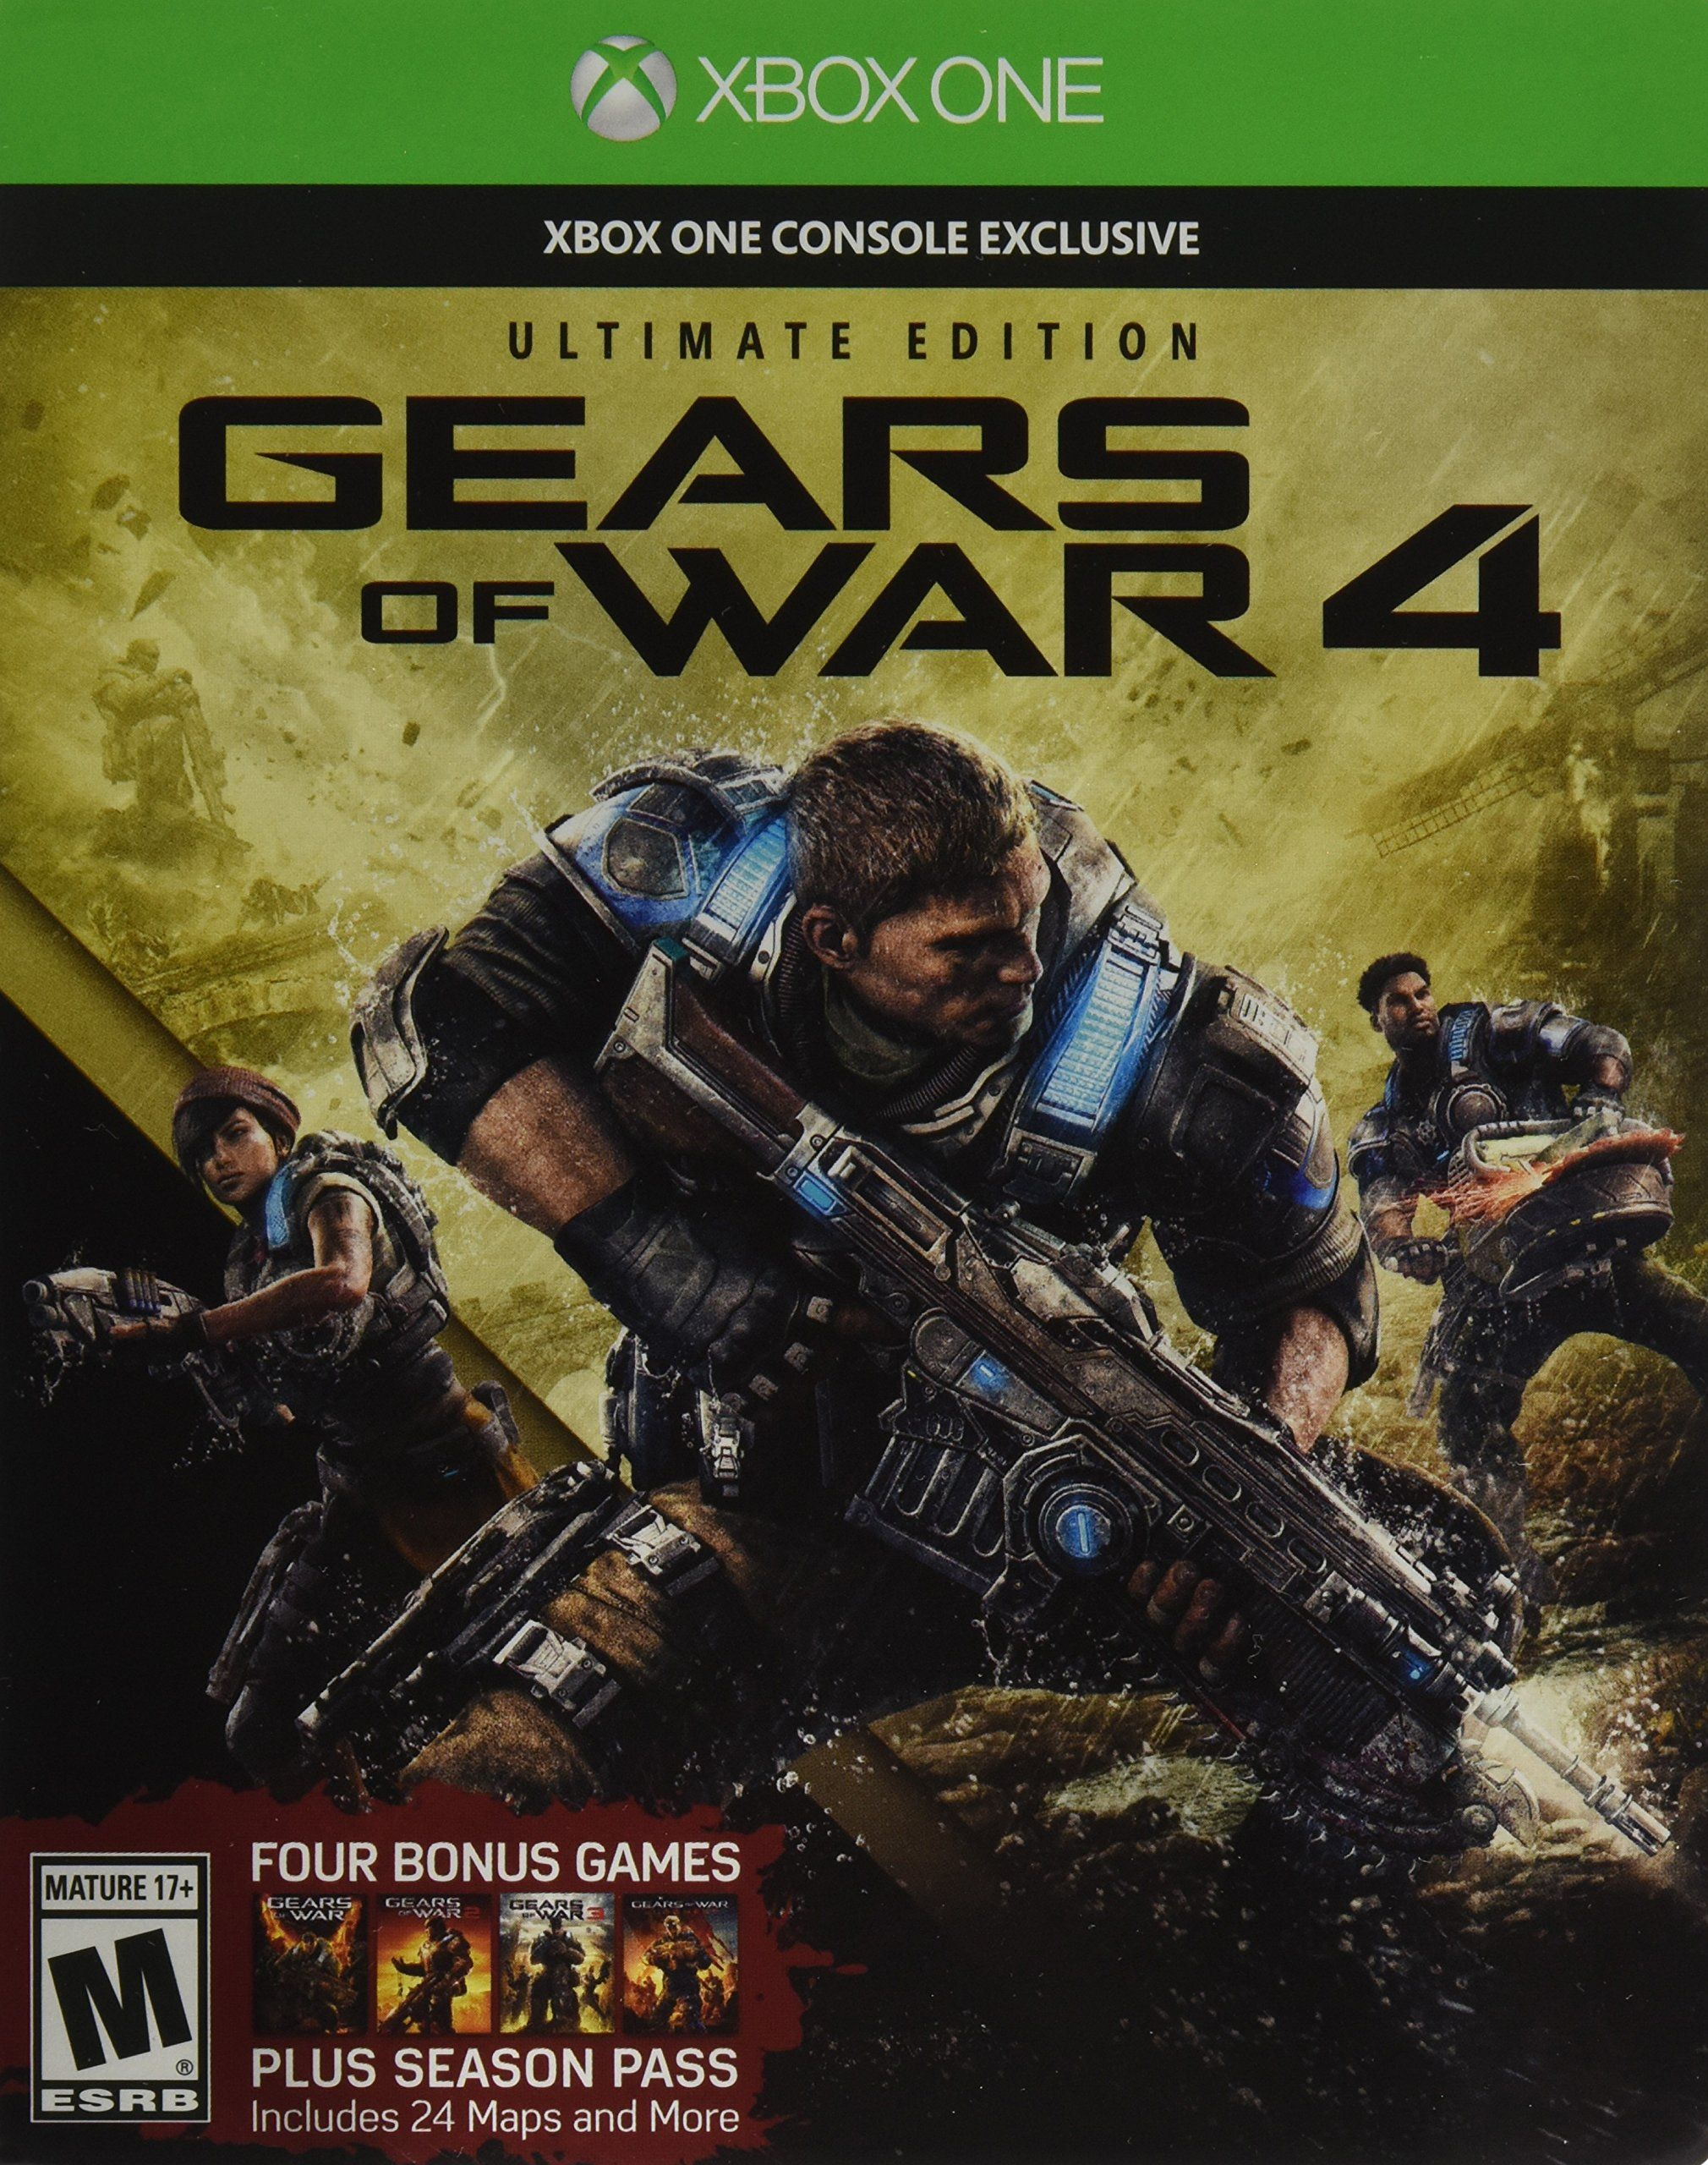 Gears of war 4 ultimate edition includes steelbook with